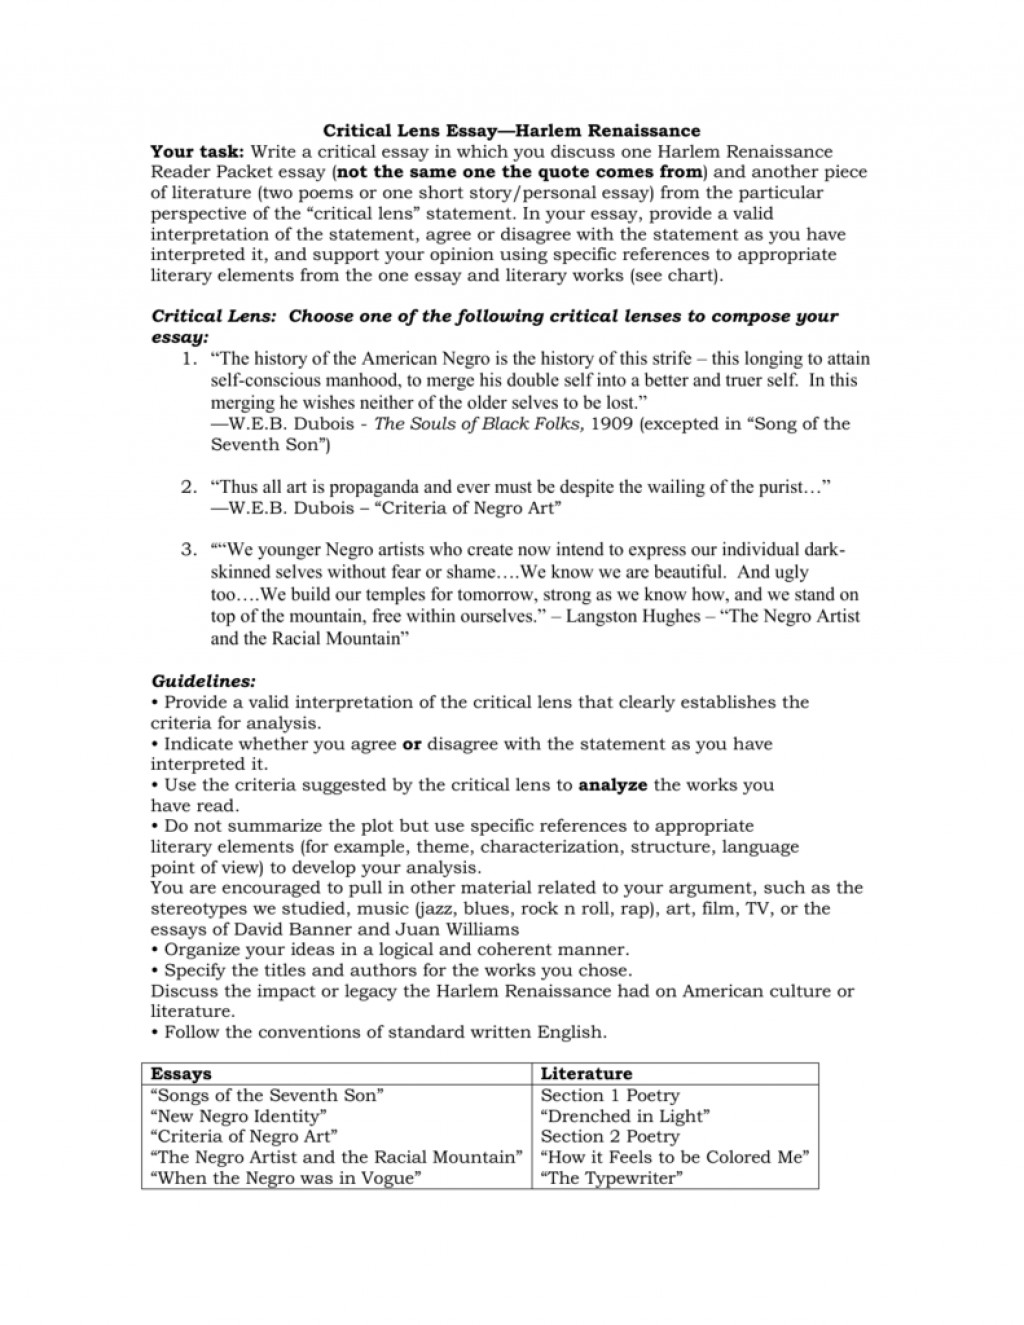 012 007525800 2 Essay Example Critical Best Lens Sample Template English Regents Large